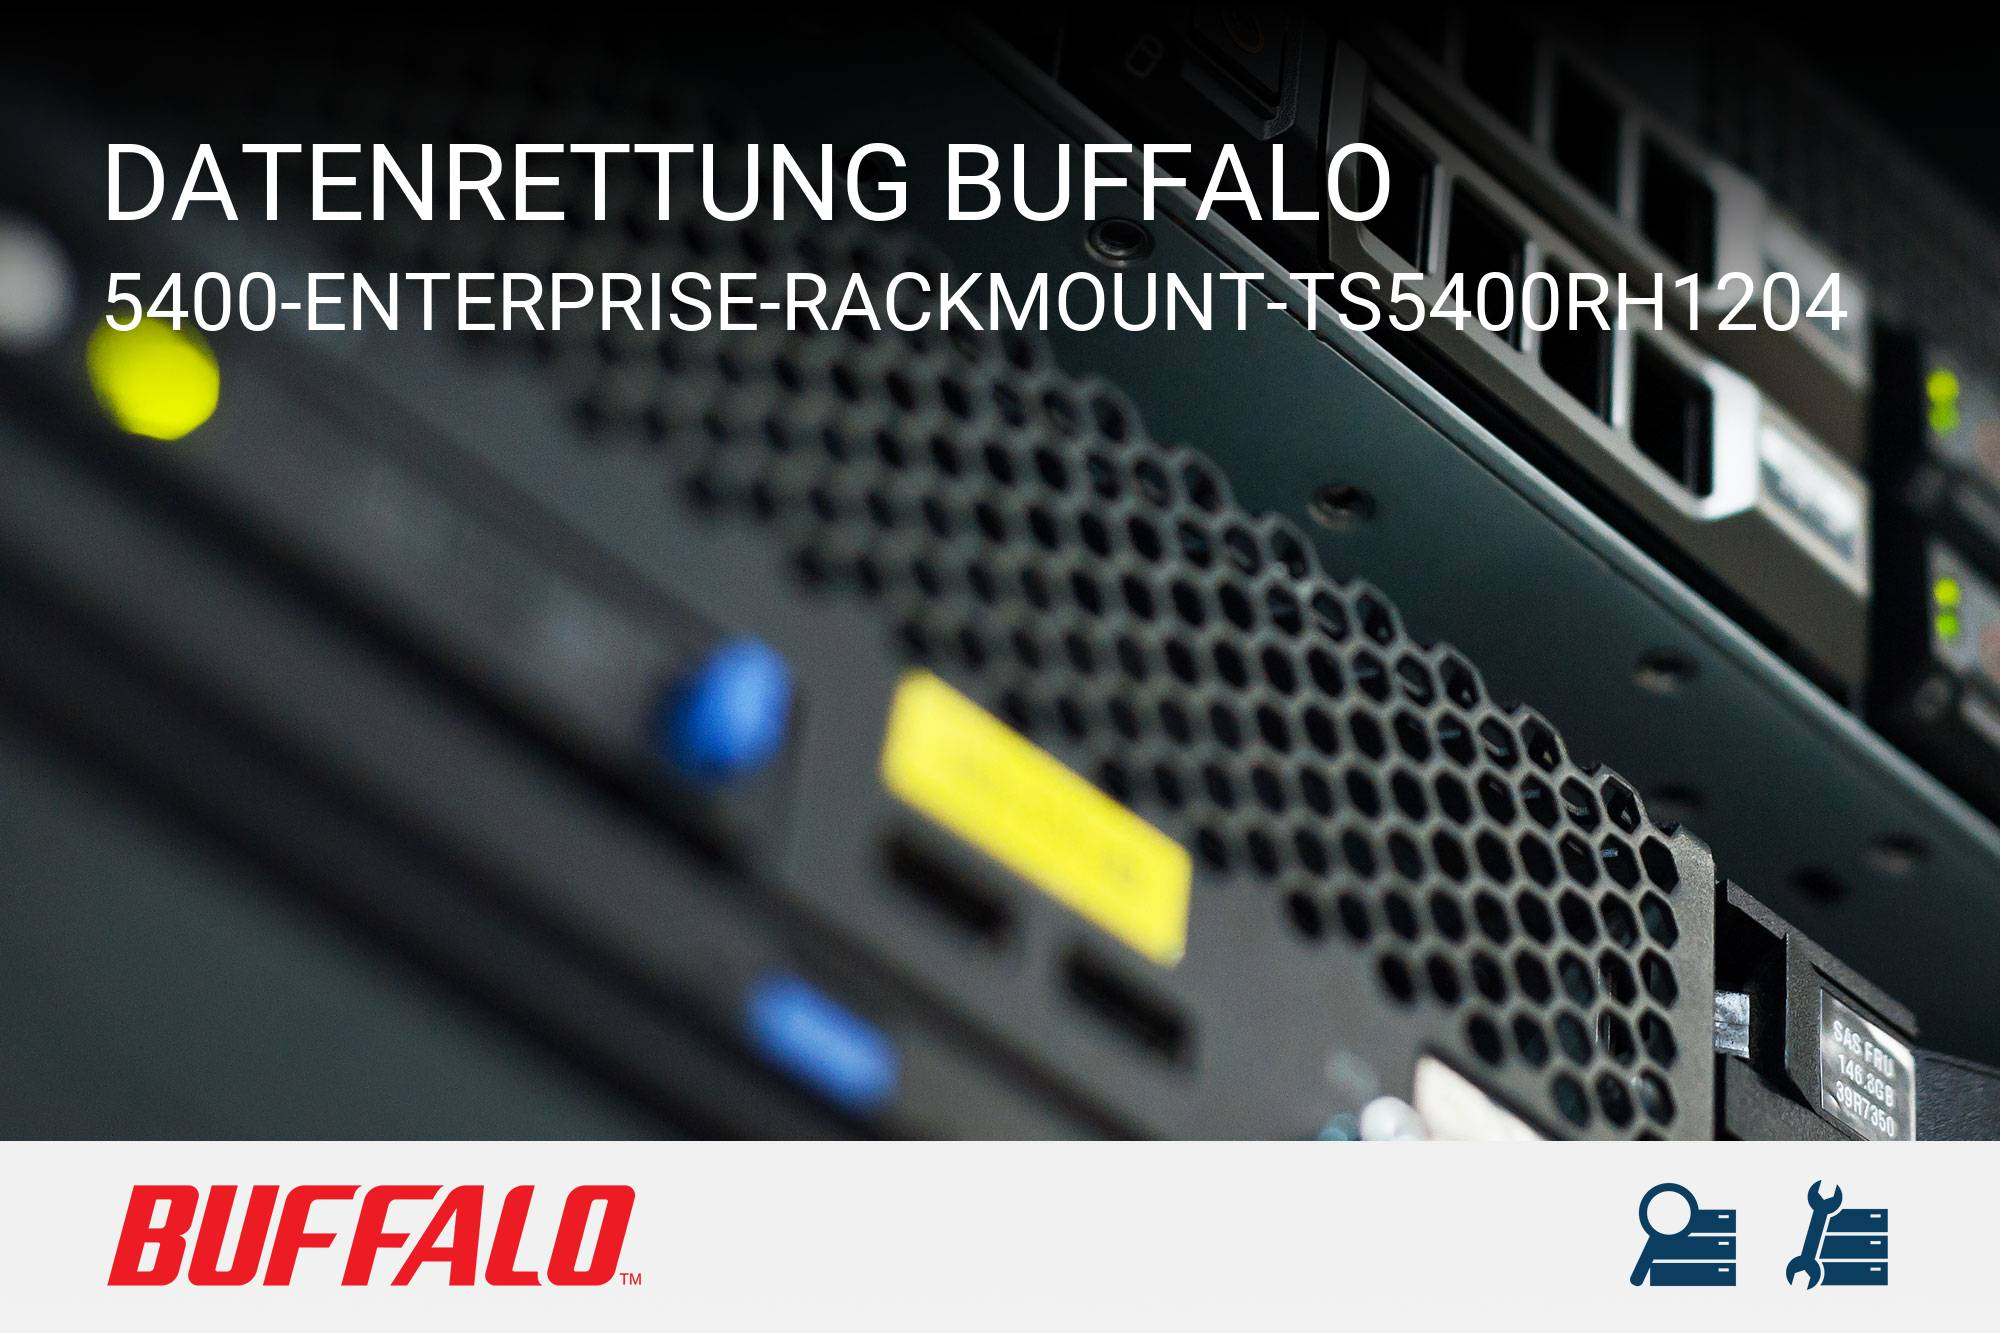 Buffalo 5400-Enterprise-Rackmount-TS5400RH1204